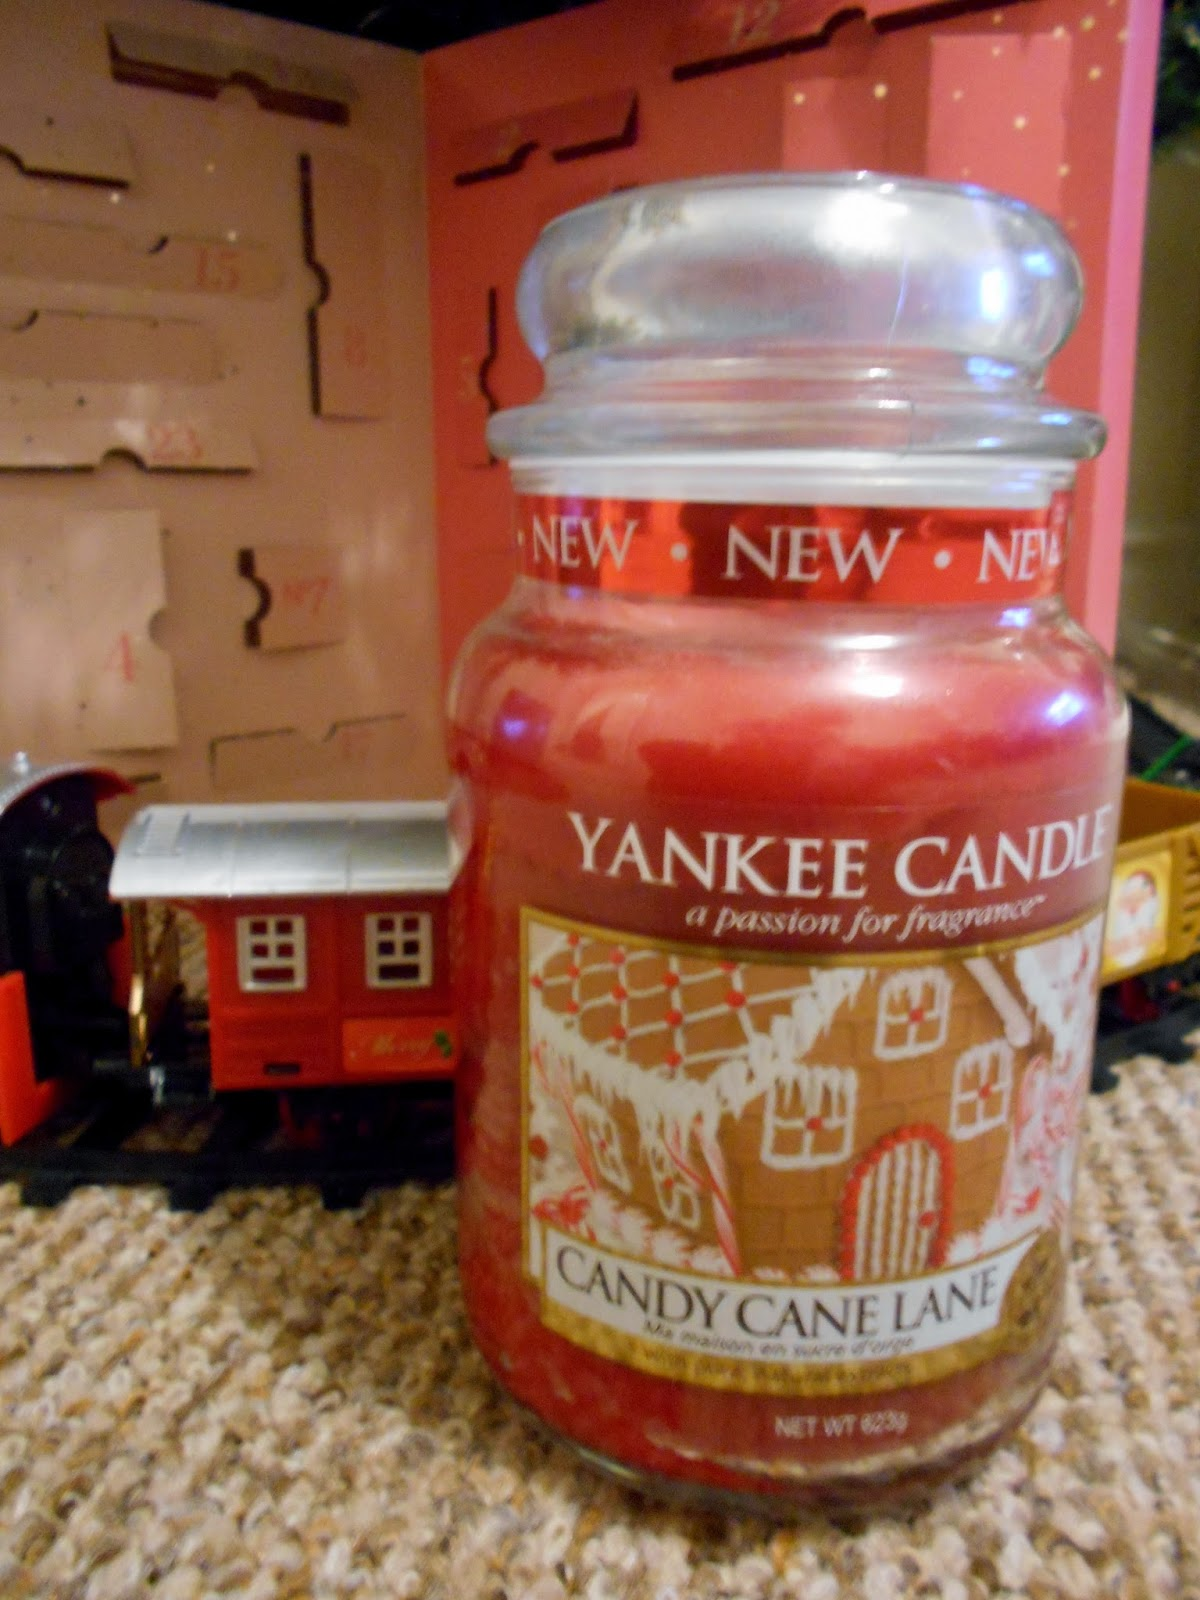 Yankee Candle - Candy Cane Lane